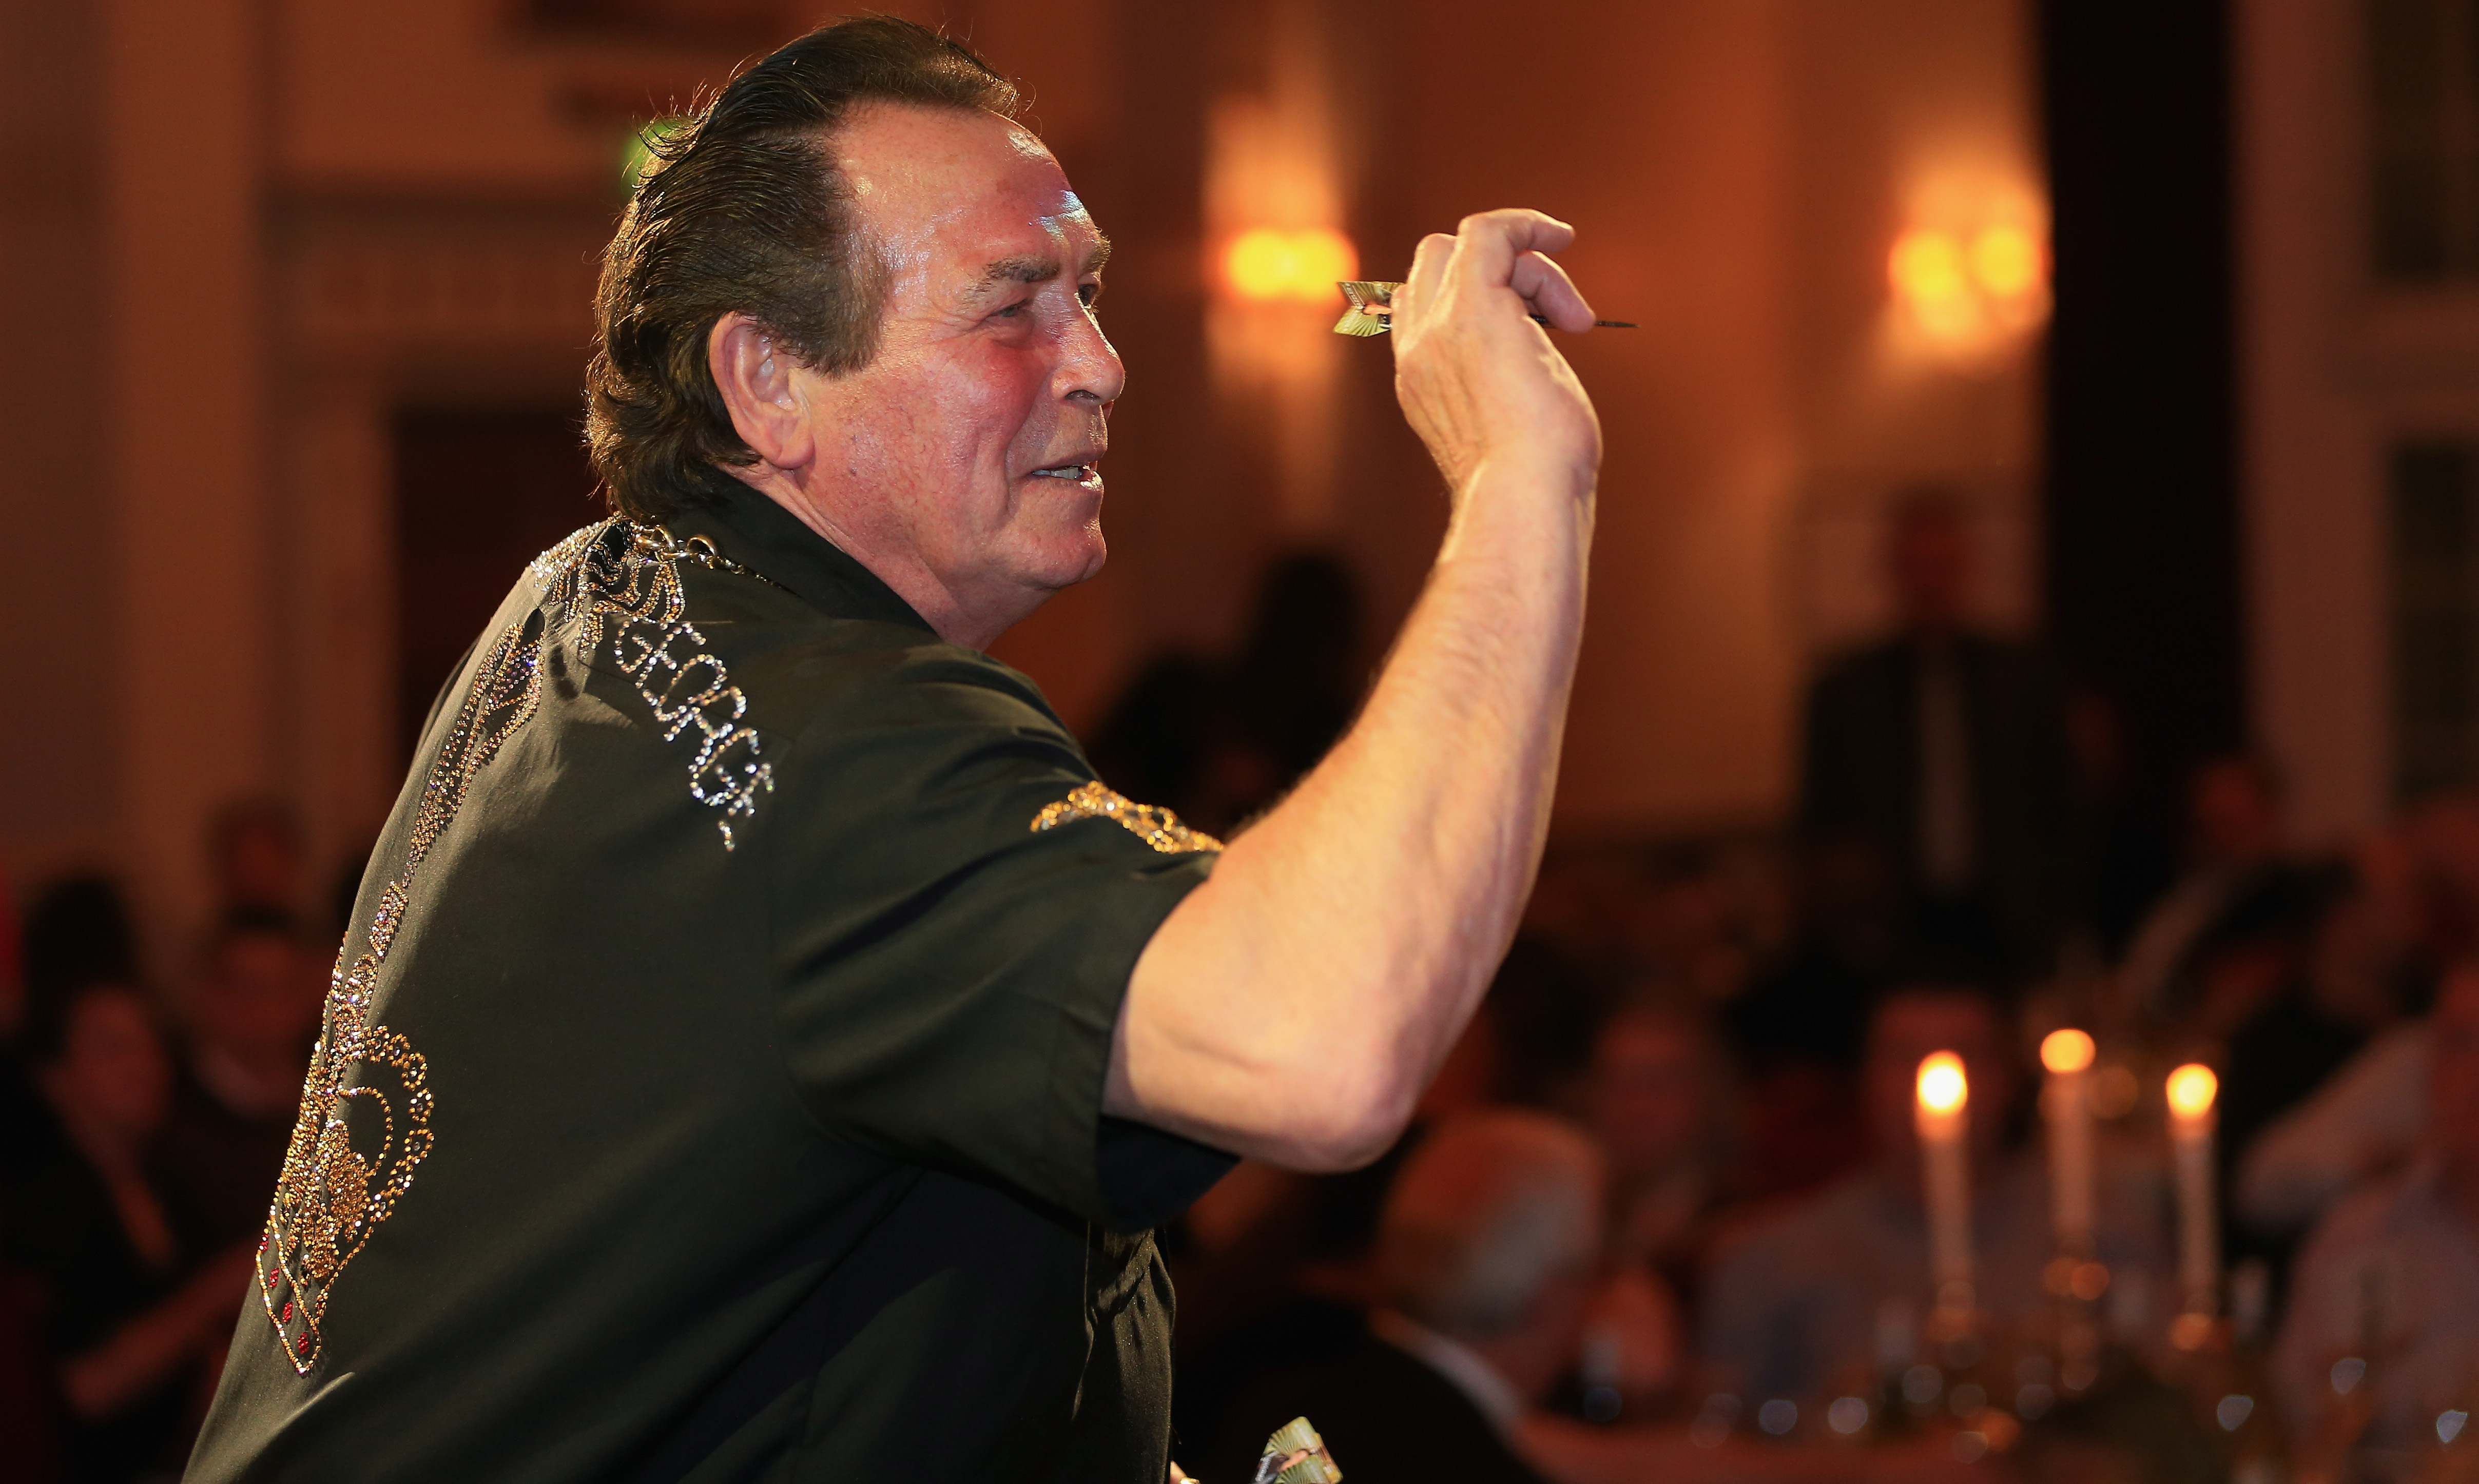 LONDON, ENGLAND - MAY 07: Bobby George, darts player, is pictured during the Pound 4 Pound Charity fundraiser for Fight4change on May 7, 2014 in London, England. (Photo by Andrew Redington/Getty Images, BA)